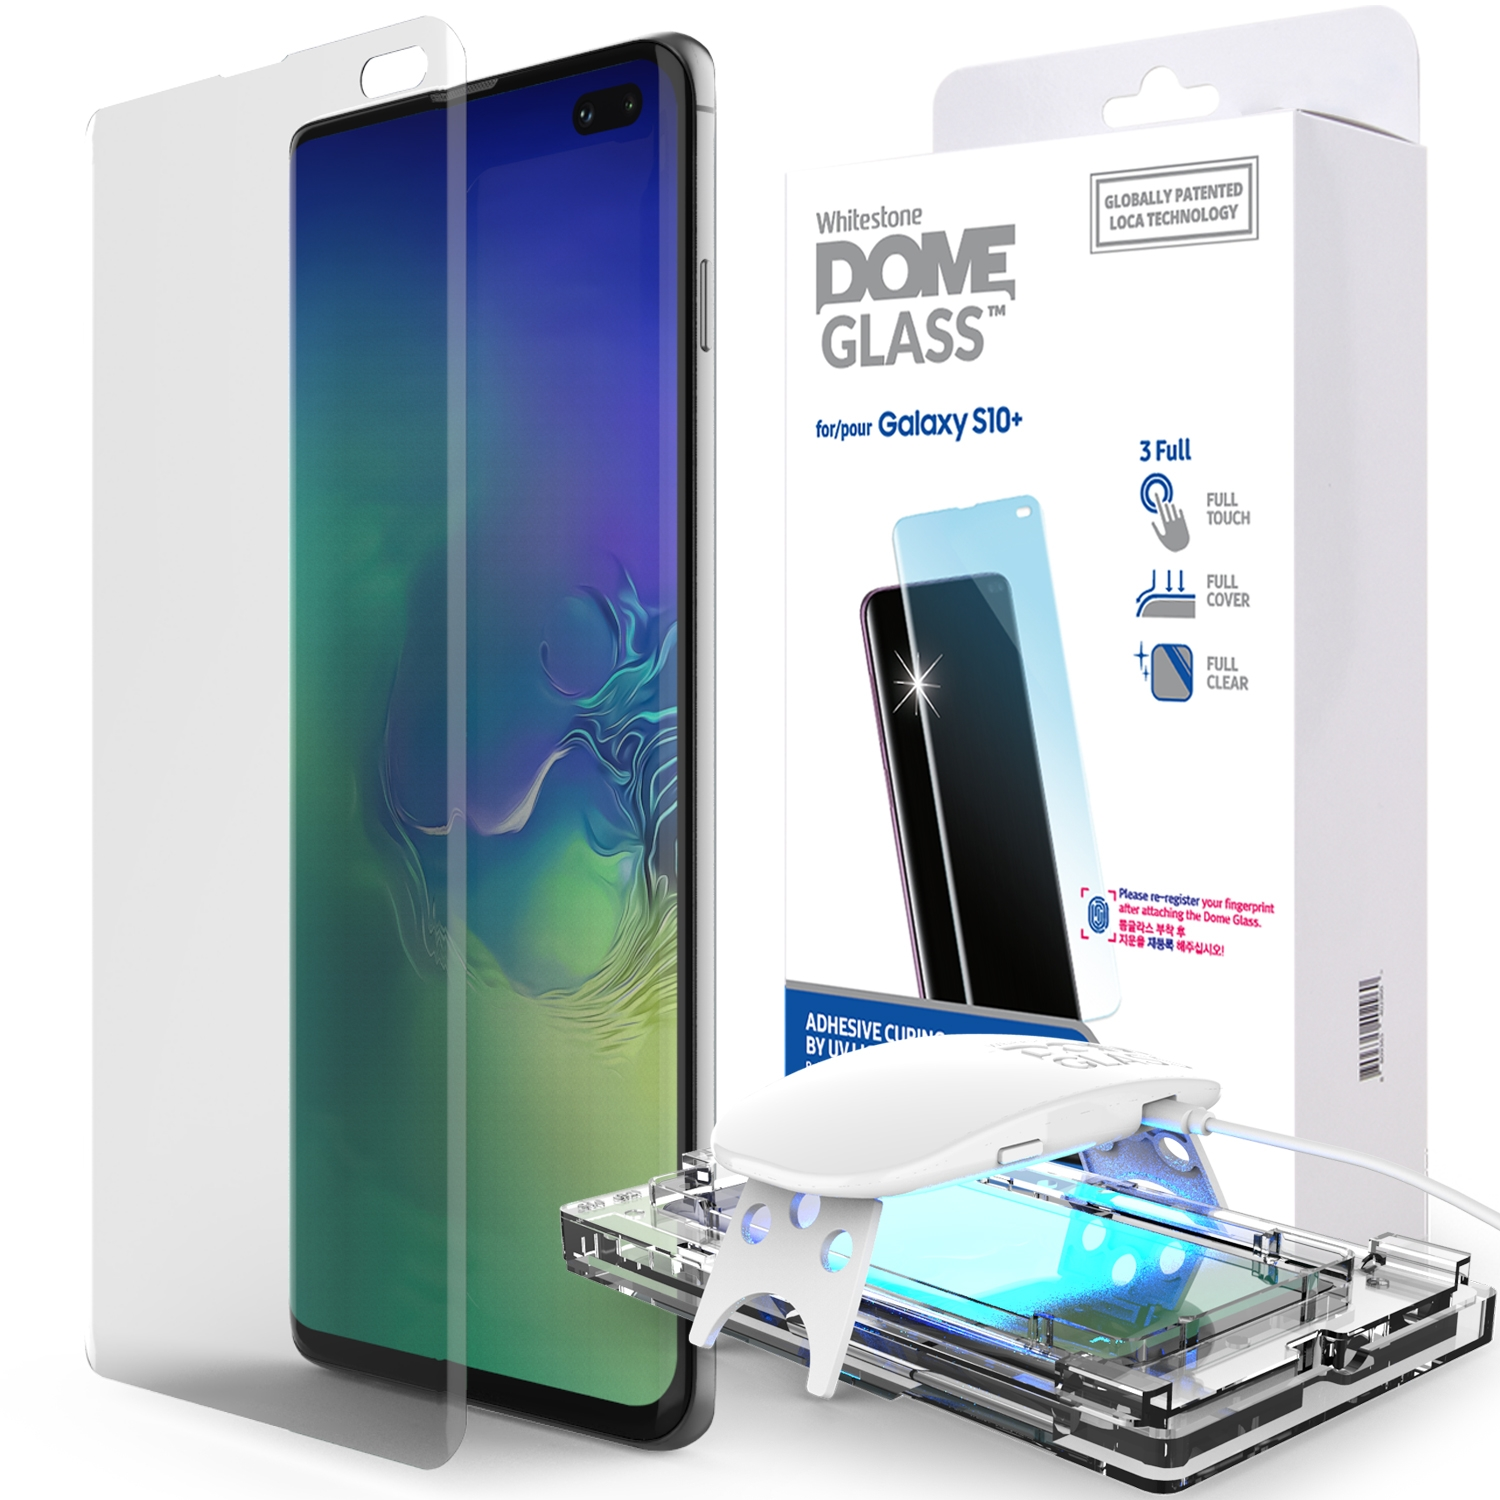 Whitestone Dome Glass - Liquid Optical Clear Adhesive & Installation Kit - Σύστημα προστασίας οθόνης Samsung Galaxy S10 Plus (45226)